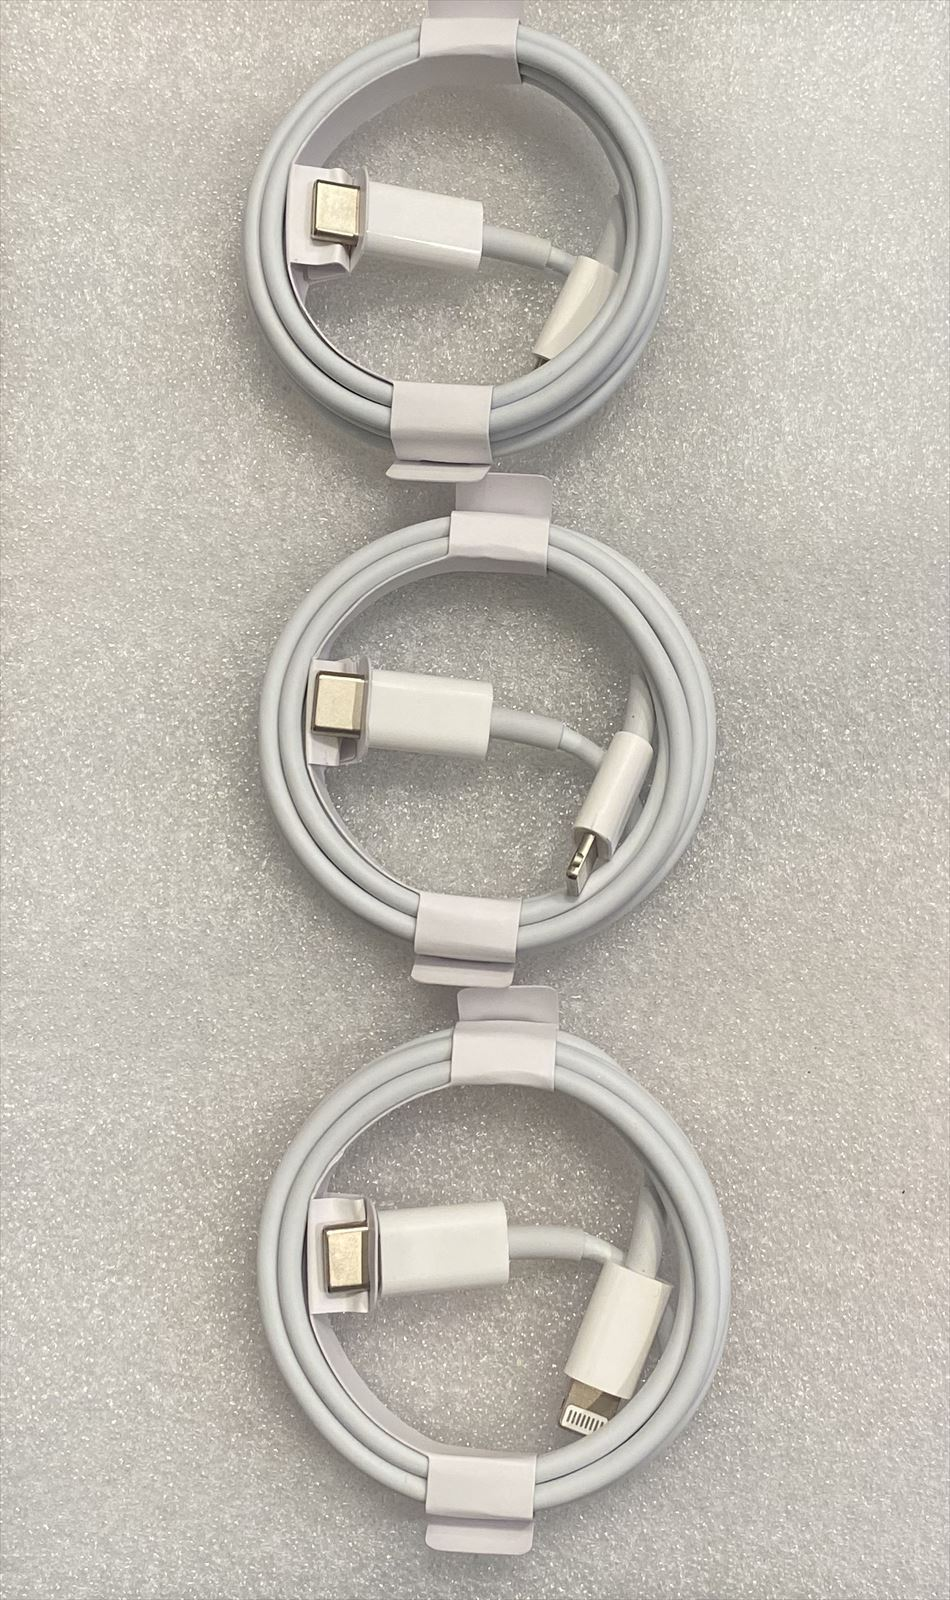 NEW 3x 3ft 18w USB-C iPhone Charger